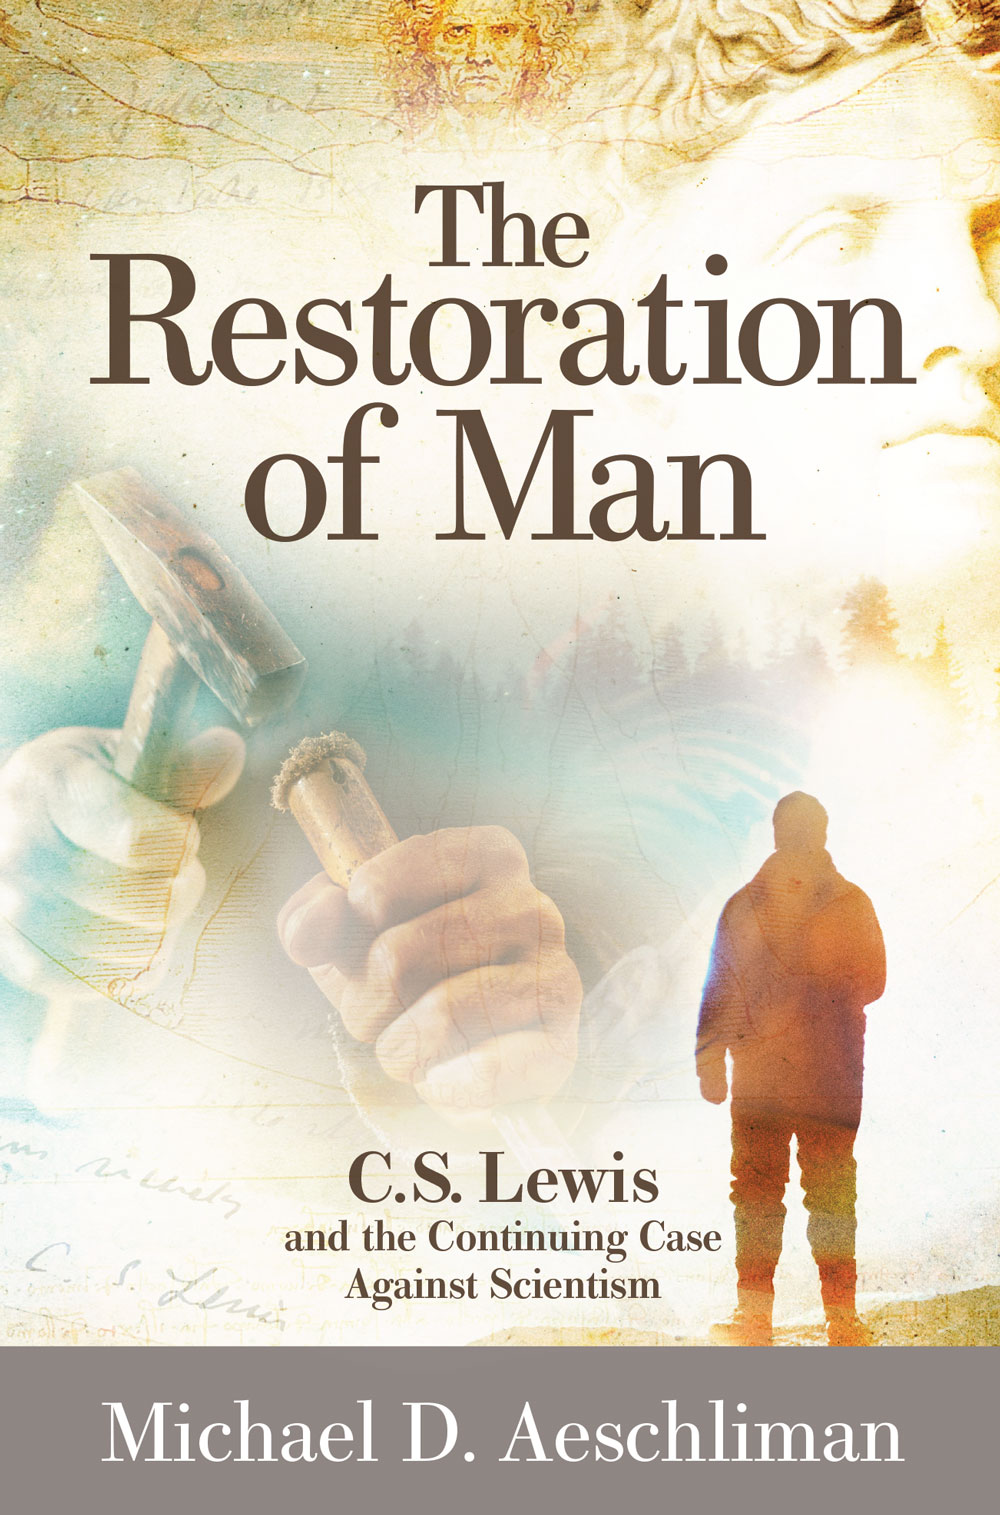 "Dr. Michael Aeschliman Publishes Revised Edition of ""The Restoration of Man: C.S. Lewis and the Continuing Case Against Scientism"" 